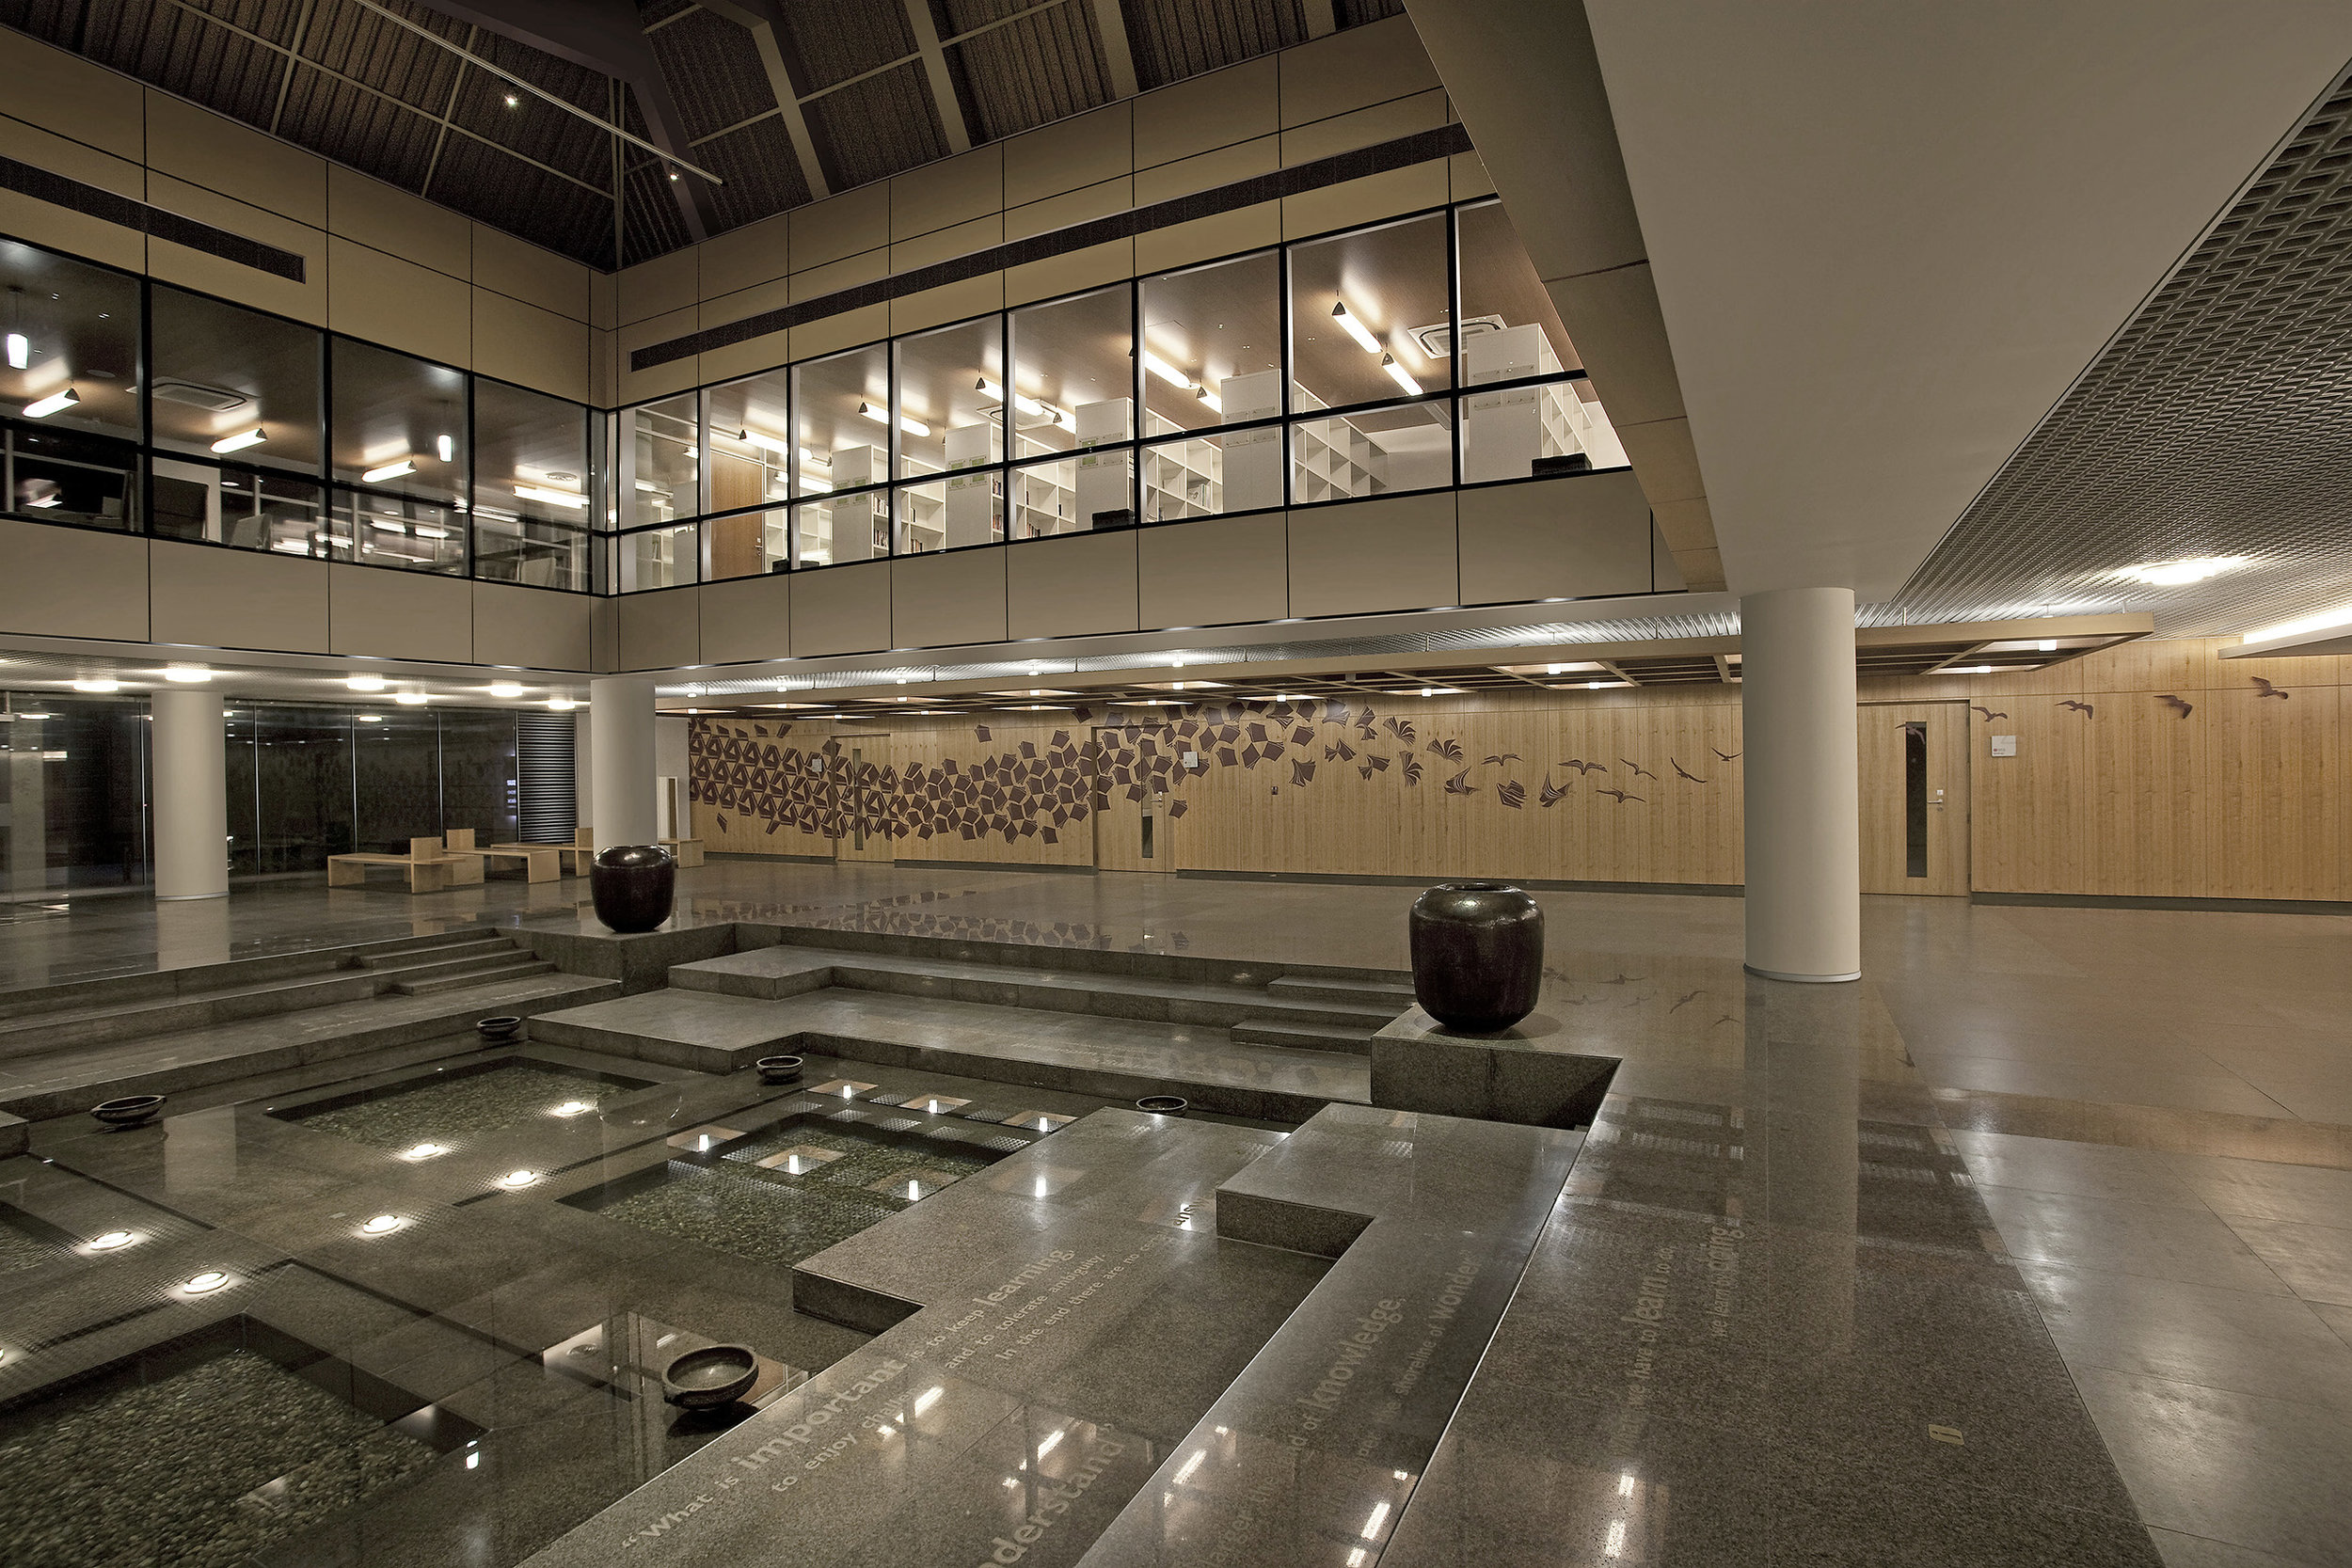 Harminder Photography Architecture_Suzlon-june'2010_MG copy.jpg